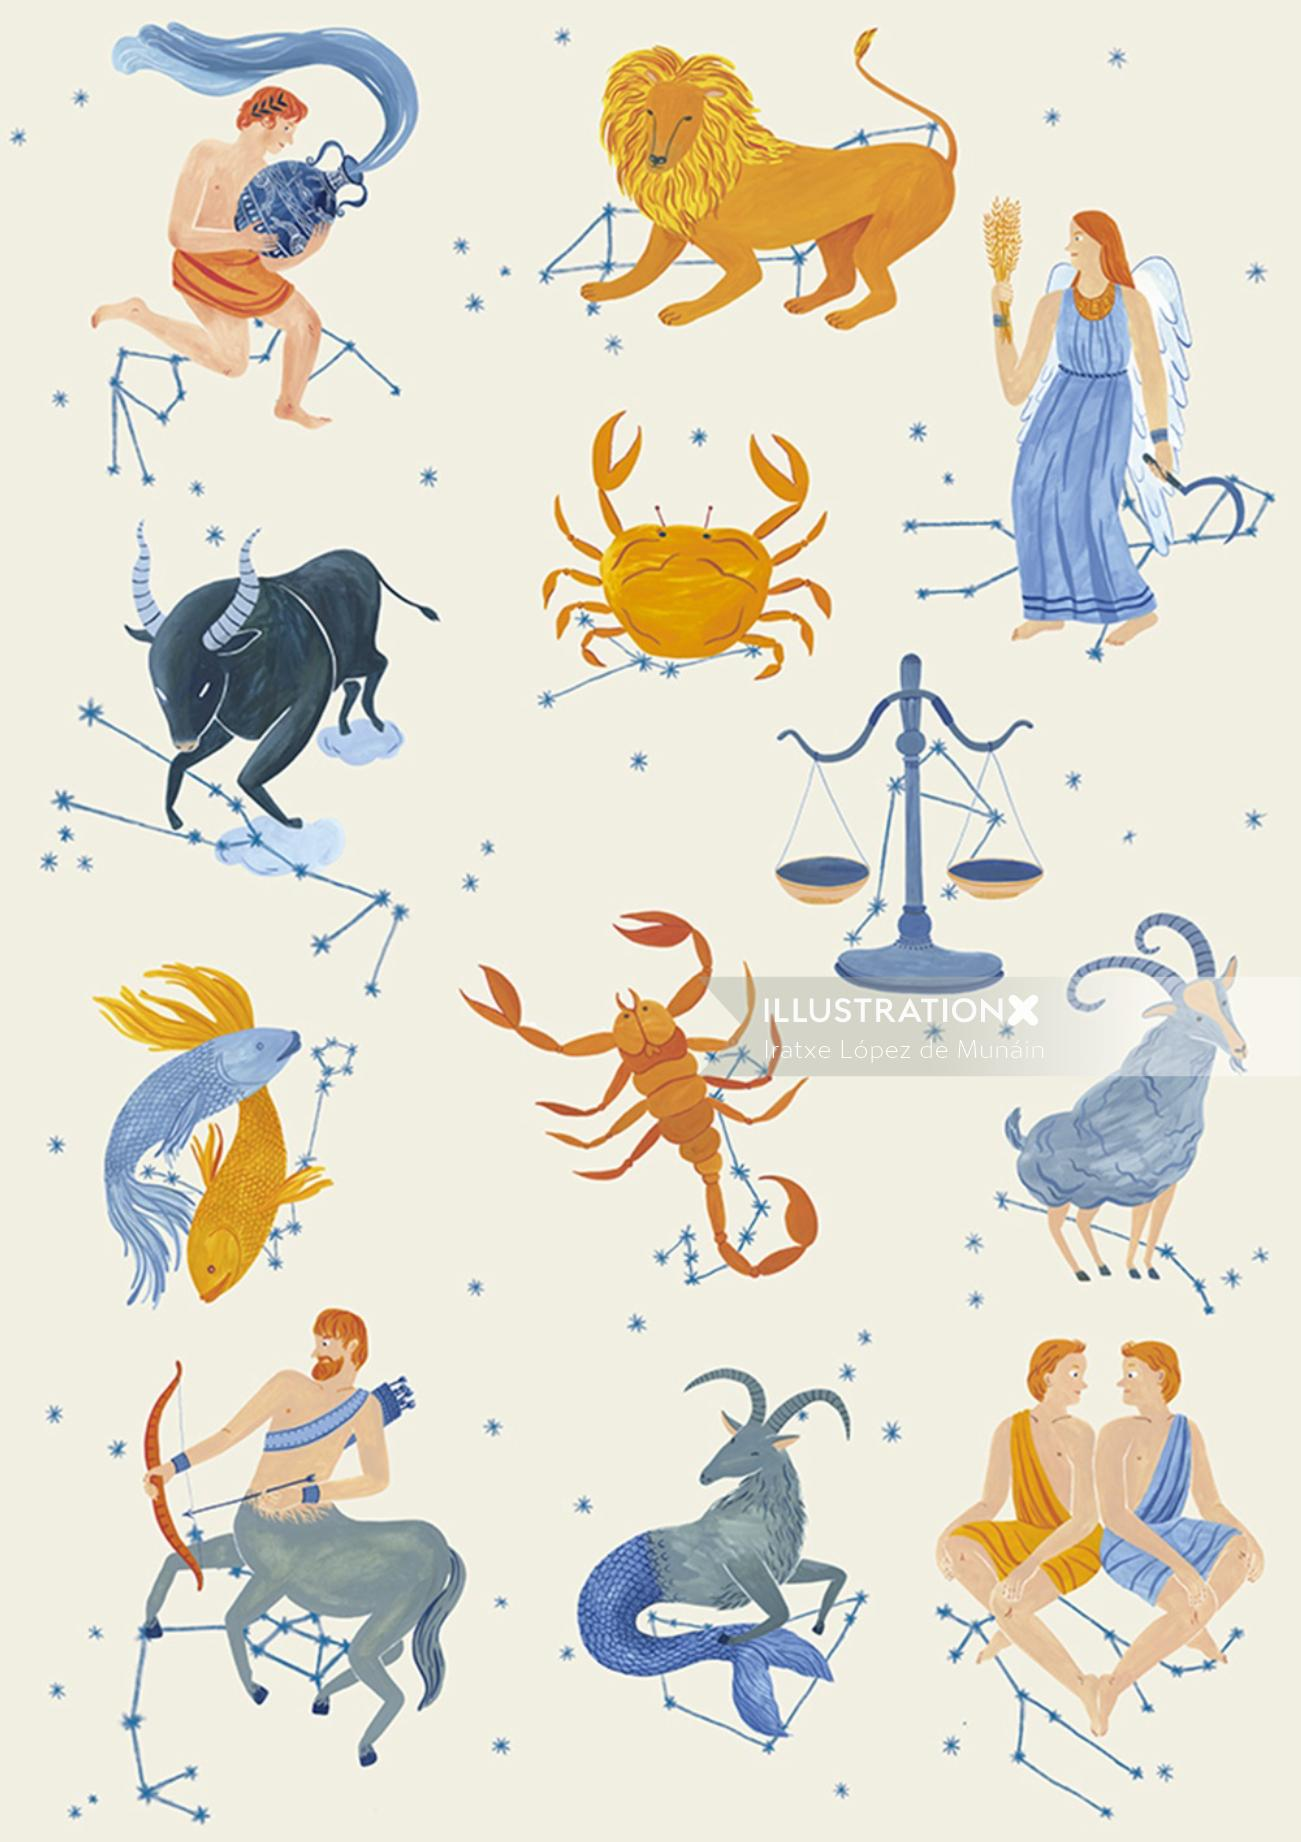 Signs of the zodiac for the Shanghai planetarium.